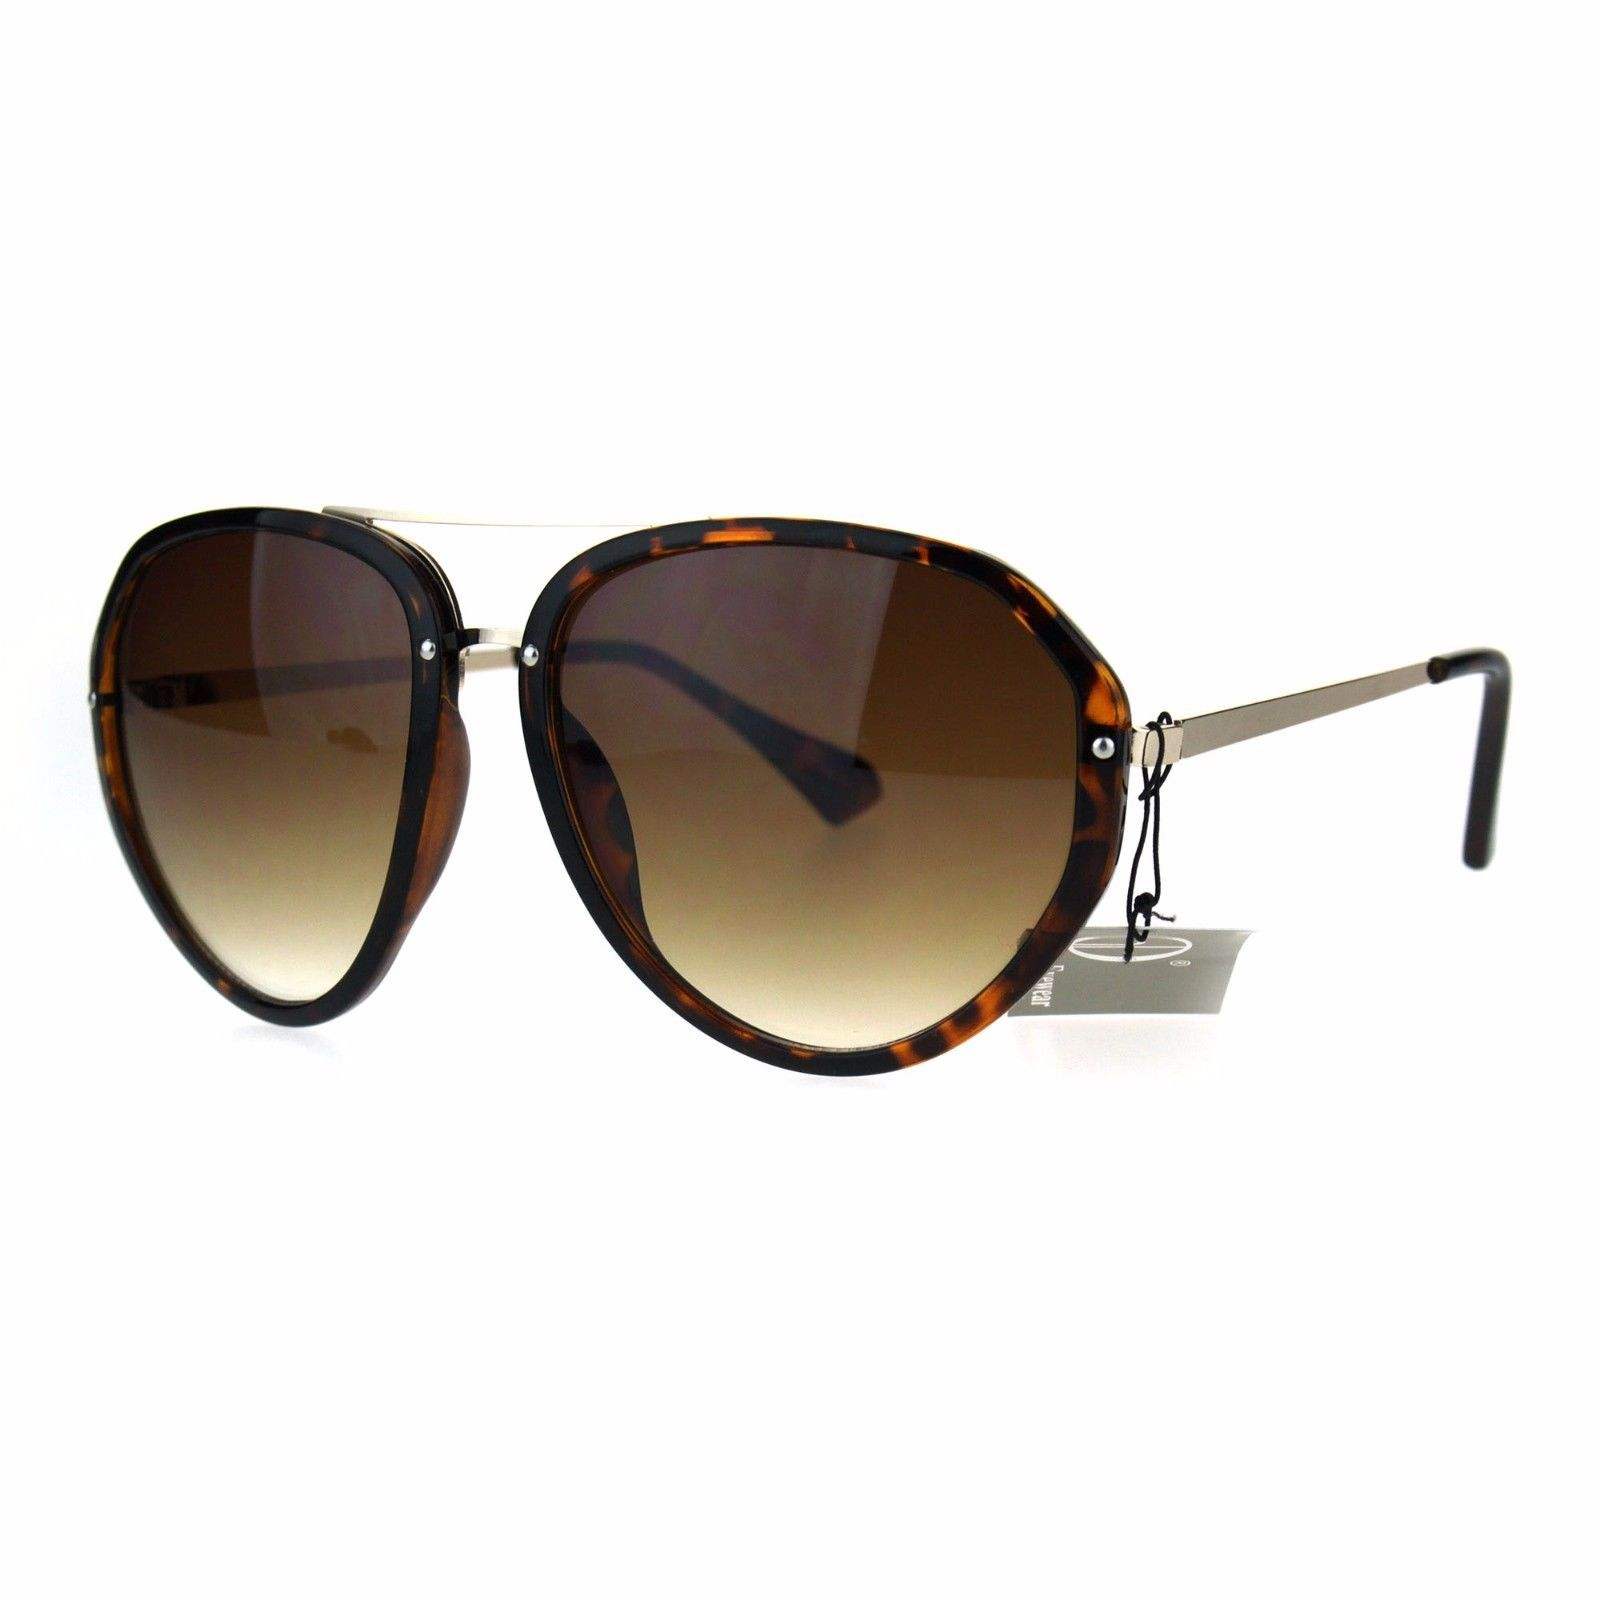 Retro Fashion Aviator Sunglasses Womens Designer Style Shades UV 400